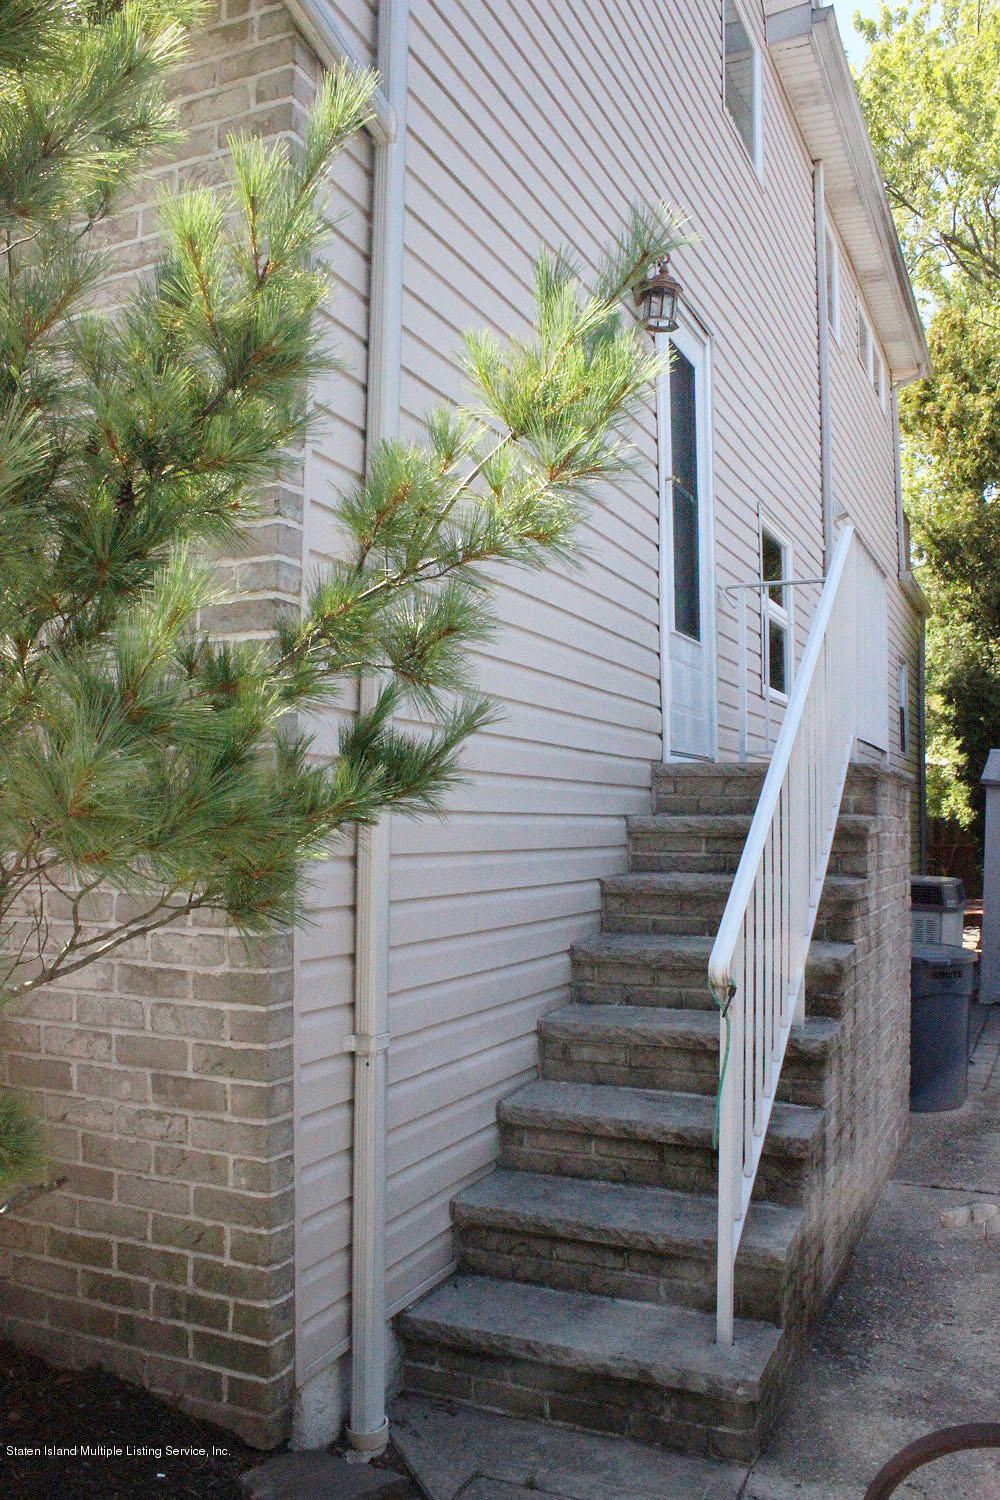 Single Family - Detached 17 Liss Street  Staten Island, NY 10312, MLS-1131453-4